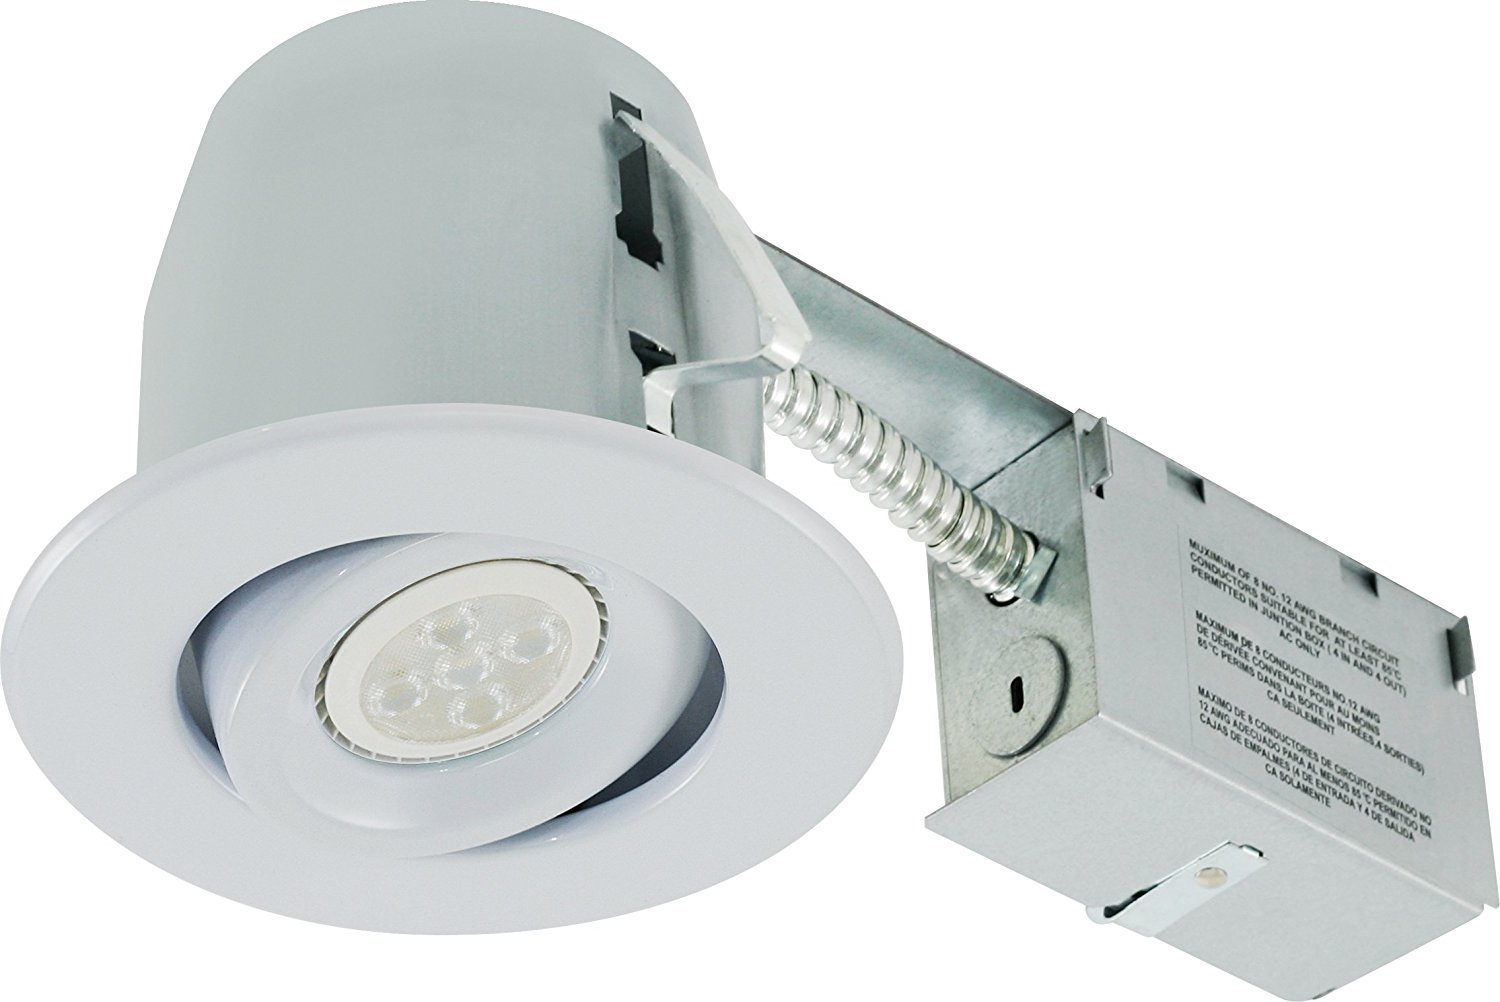 Liteline RC402C18R3-LED-EW-WH All-in-One 4-inch LED Recessed Combo with Remodel Housing, 6W LED PAR16 lamp, Gimbal Trim, White